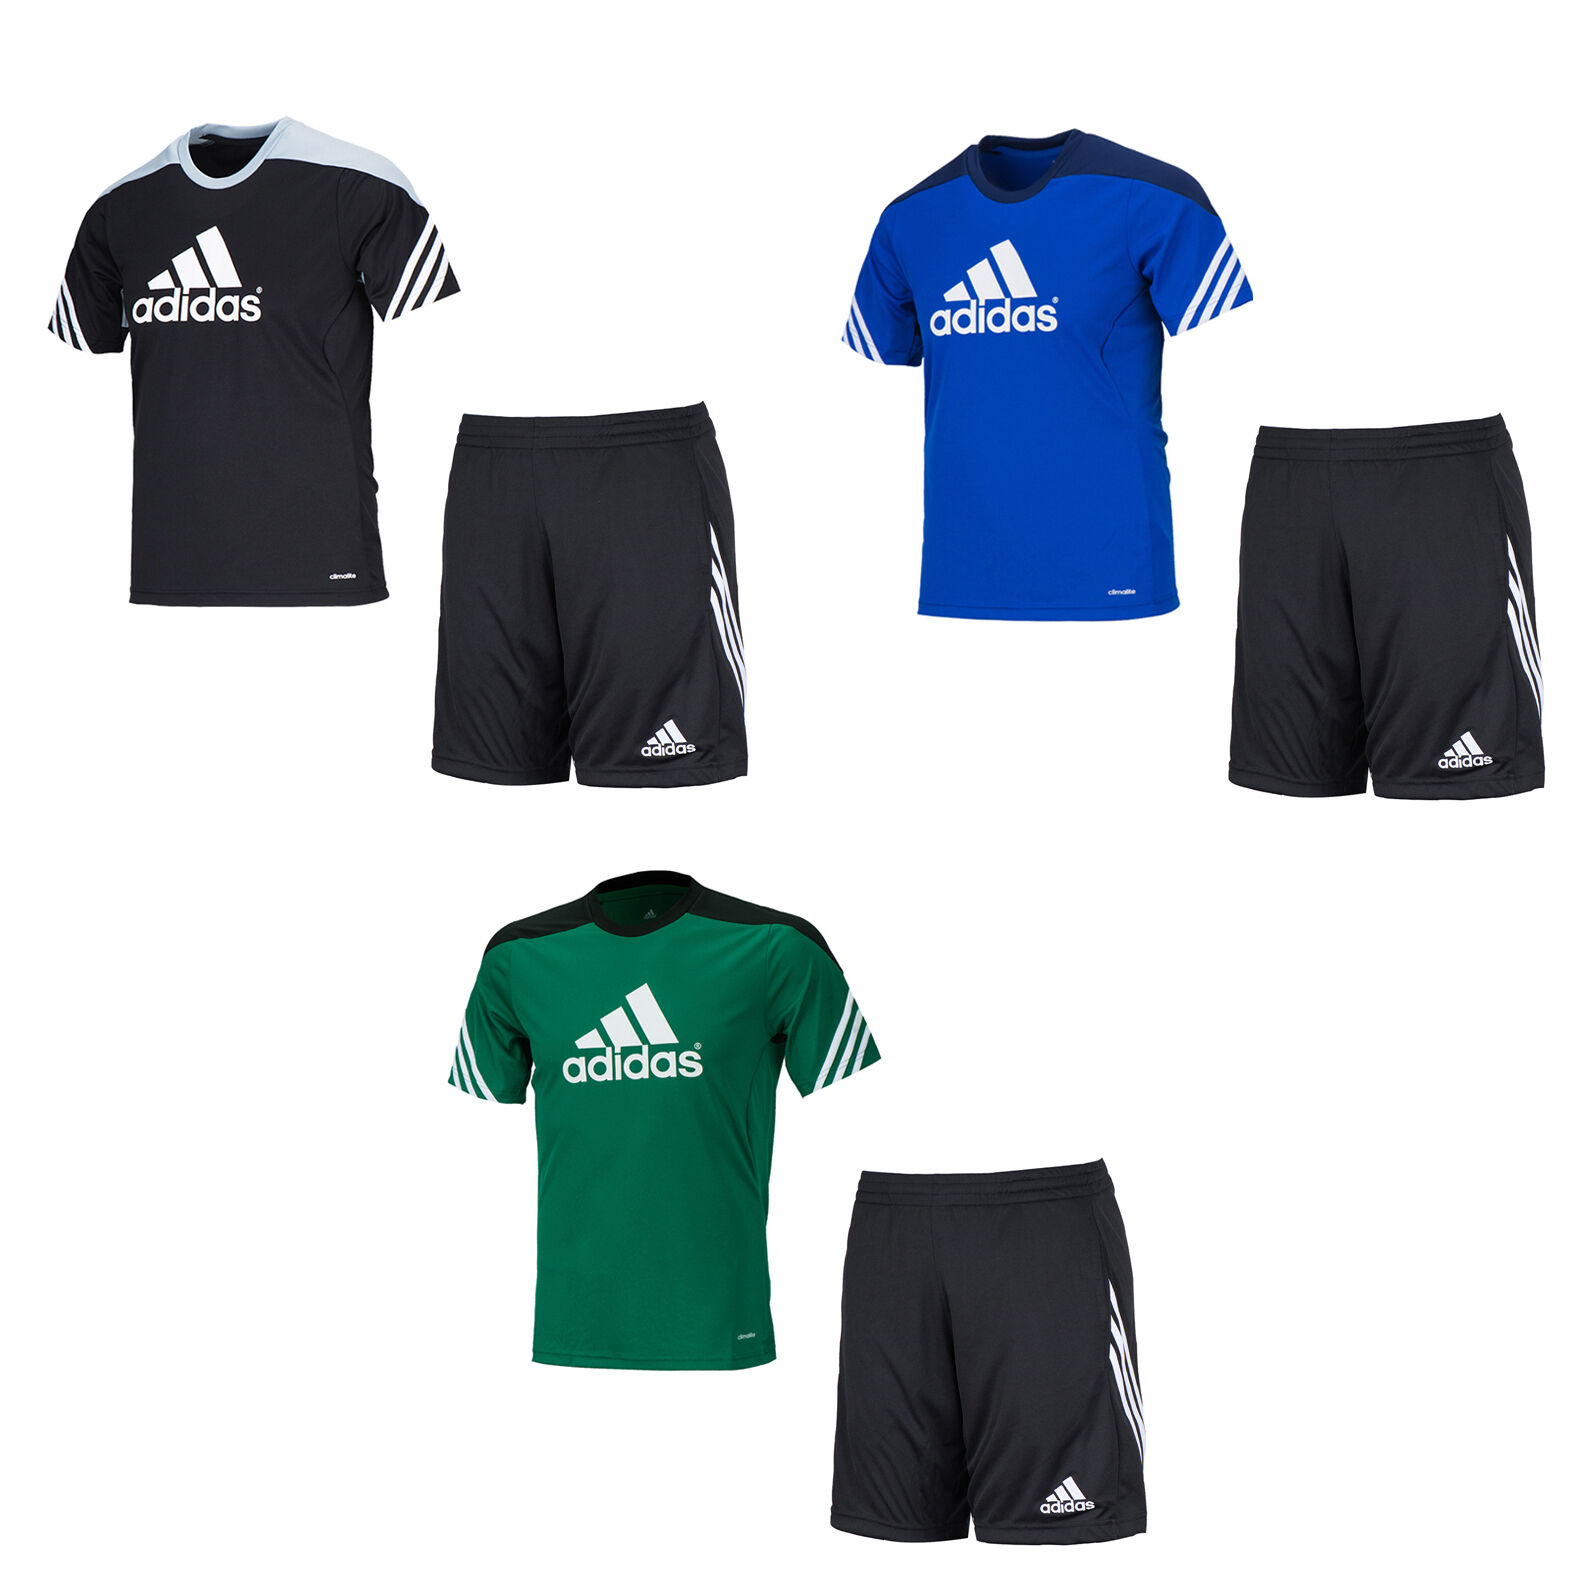 Adidas Youth Sereno 14 Training Set F49695-D82943 S S Jersey Pants Gym Junior